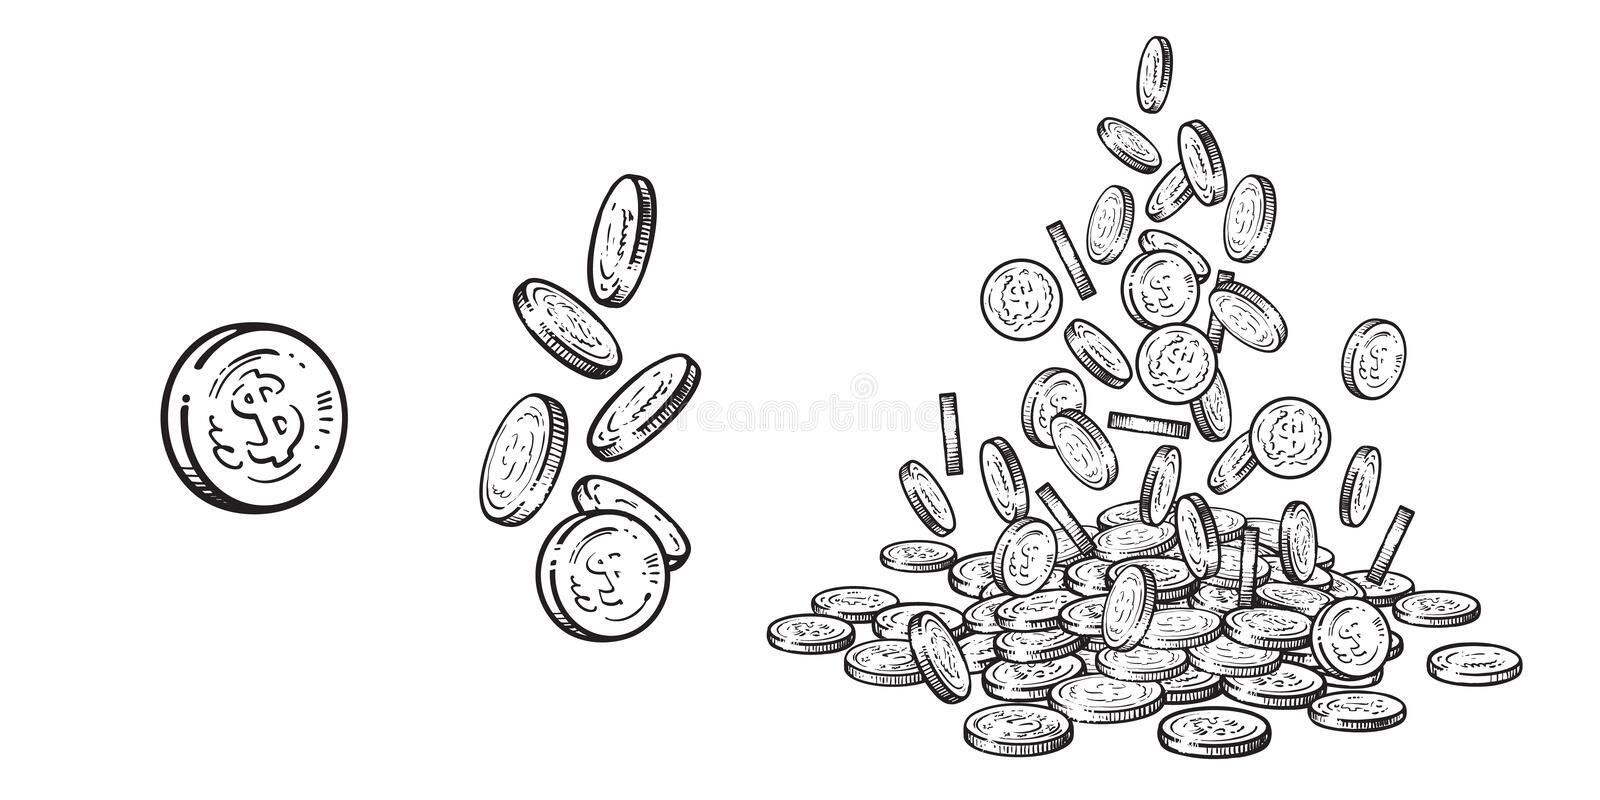 Finance, money set. Sketch of falling gold coins in different positions, pile of cash, stack of money. Hand drawn stock illustration